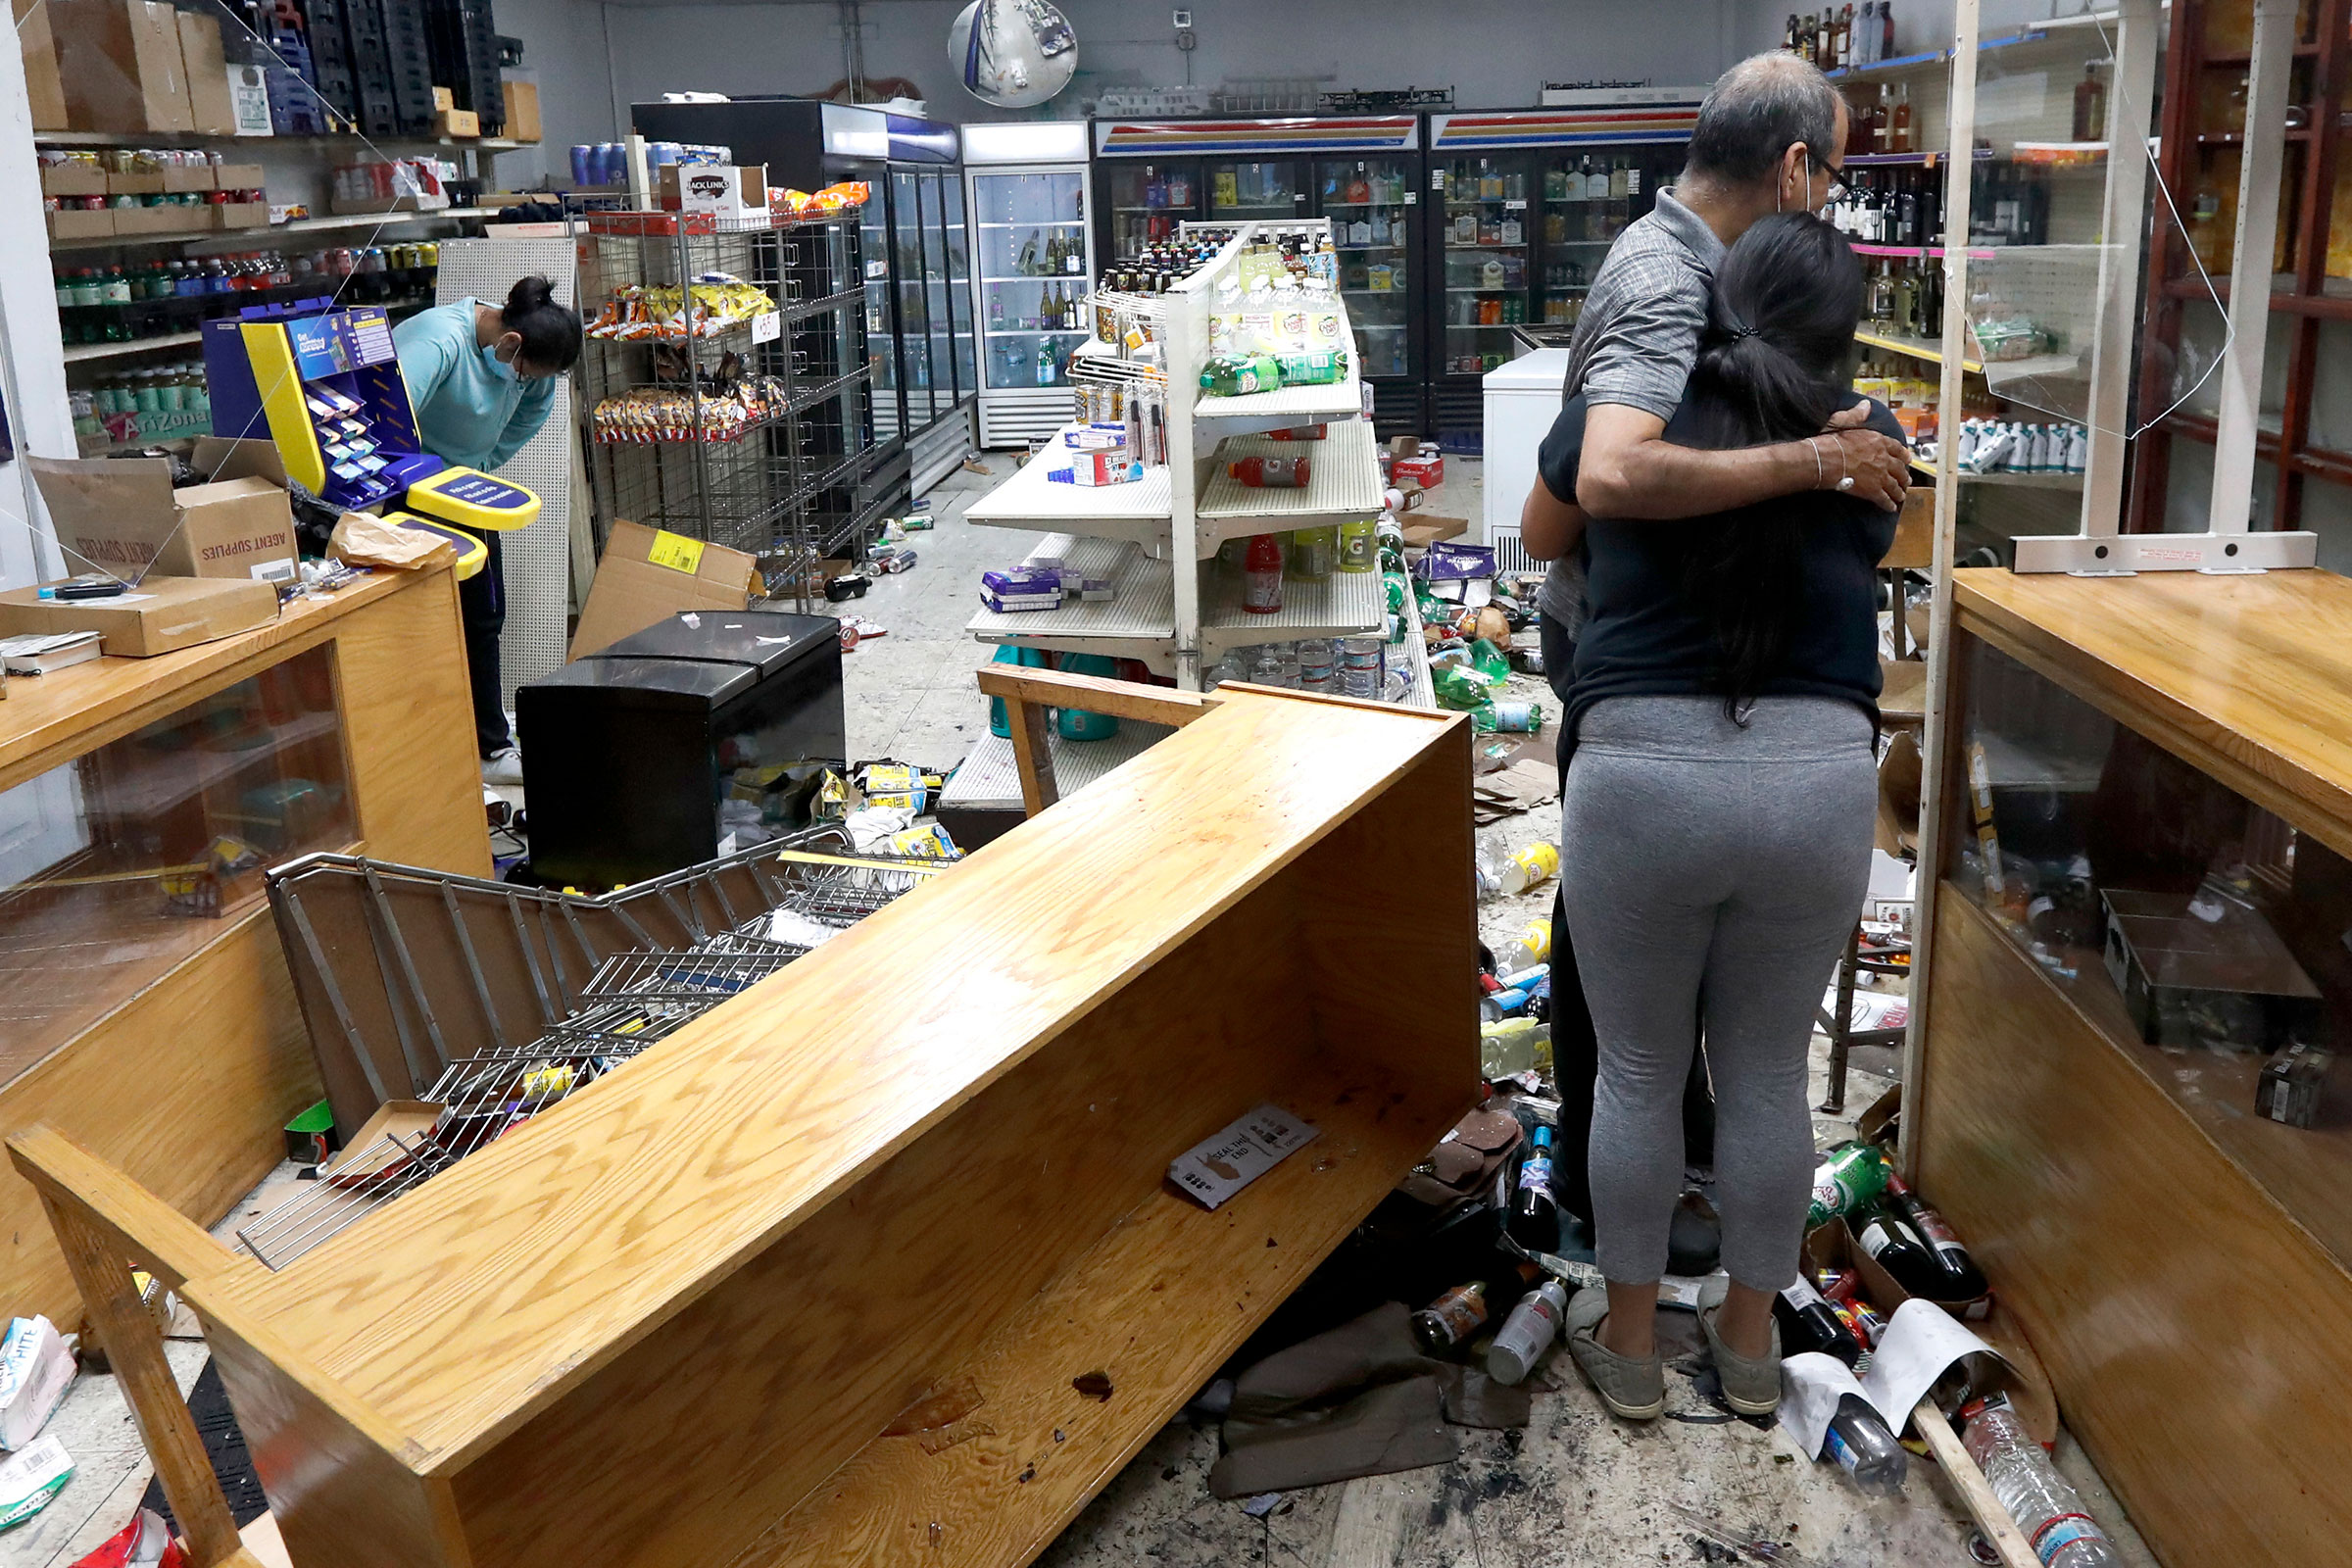 Yogi Dalal hugs his daughter Jigisha as his other daughter Kajal, left, bows her head at the family food and liquor store on, Aug. 10, 2020, after the family business was vandalized in Chicago.